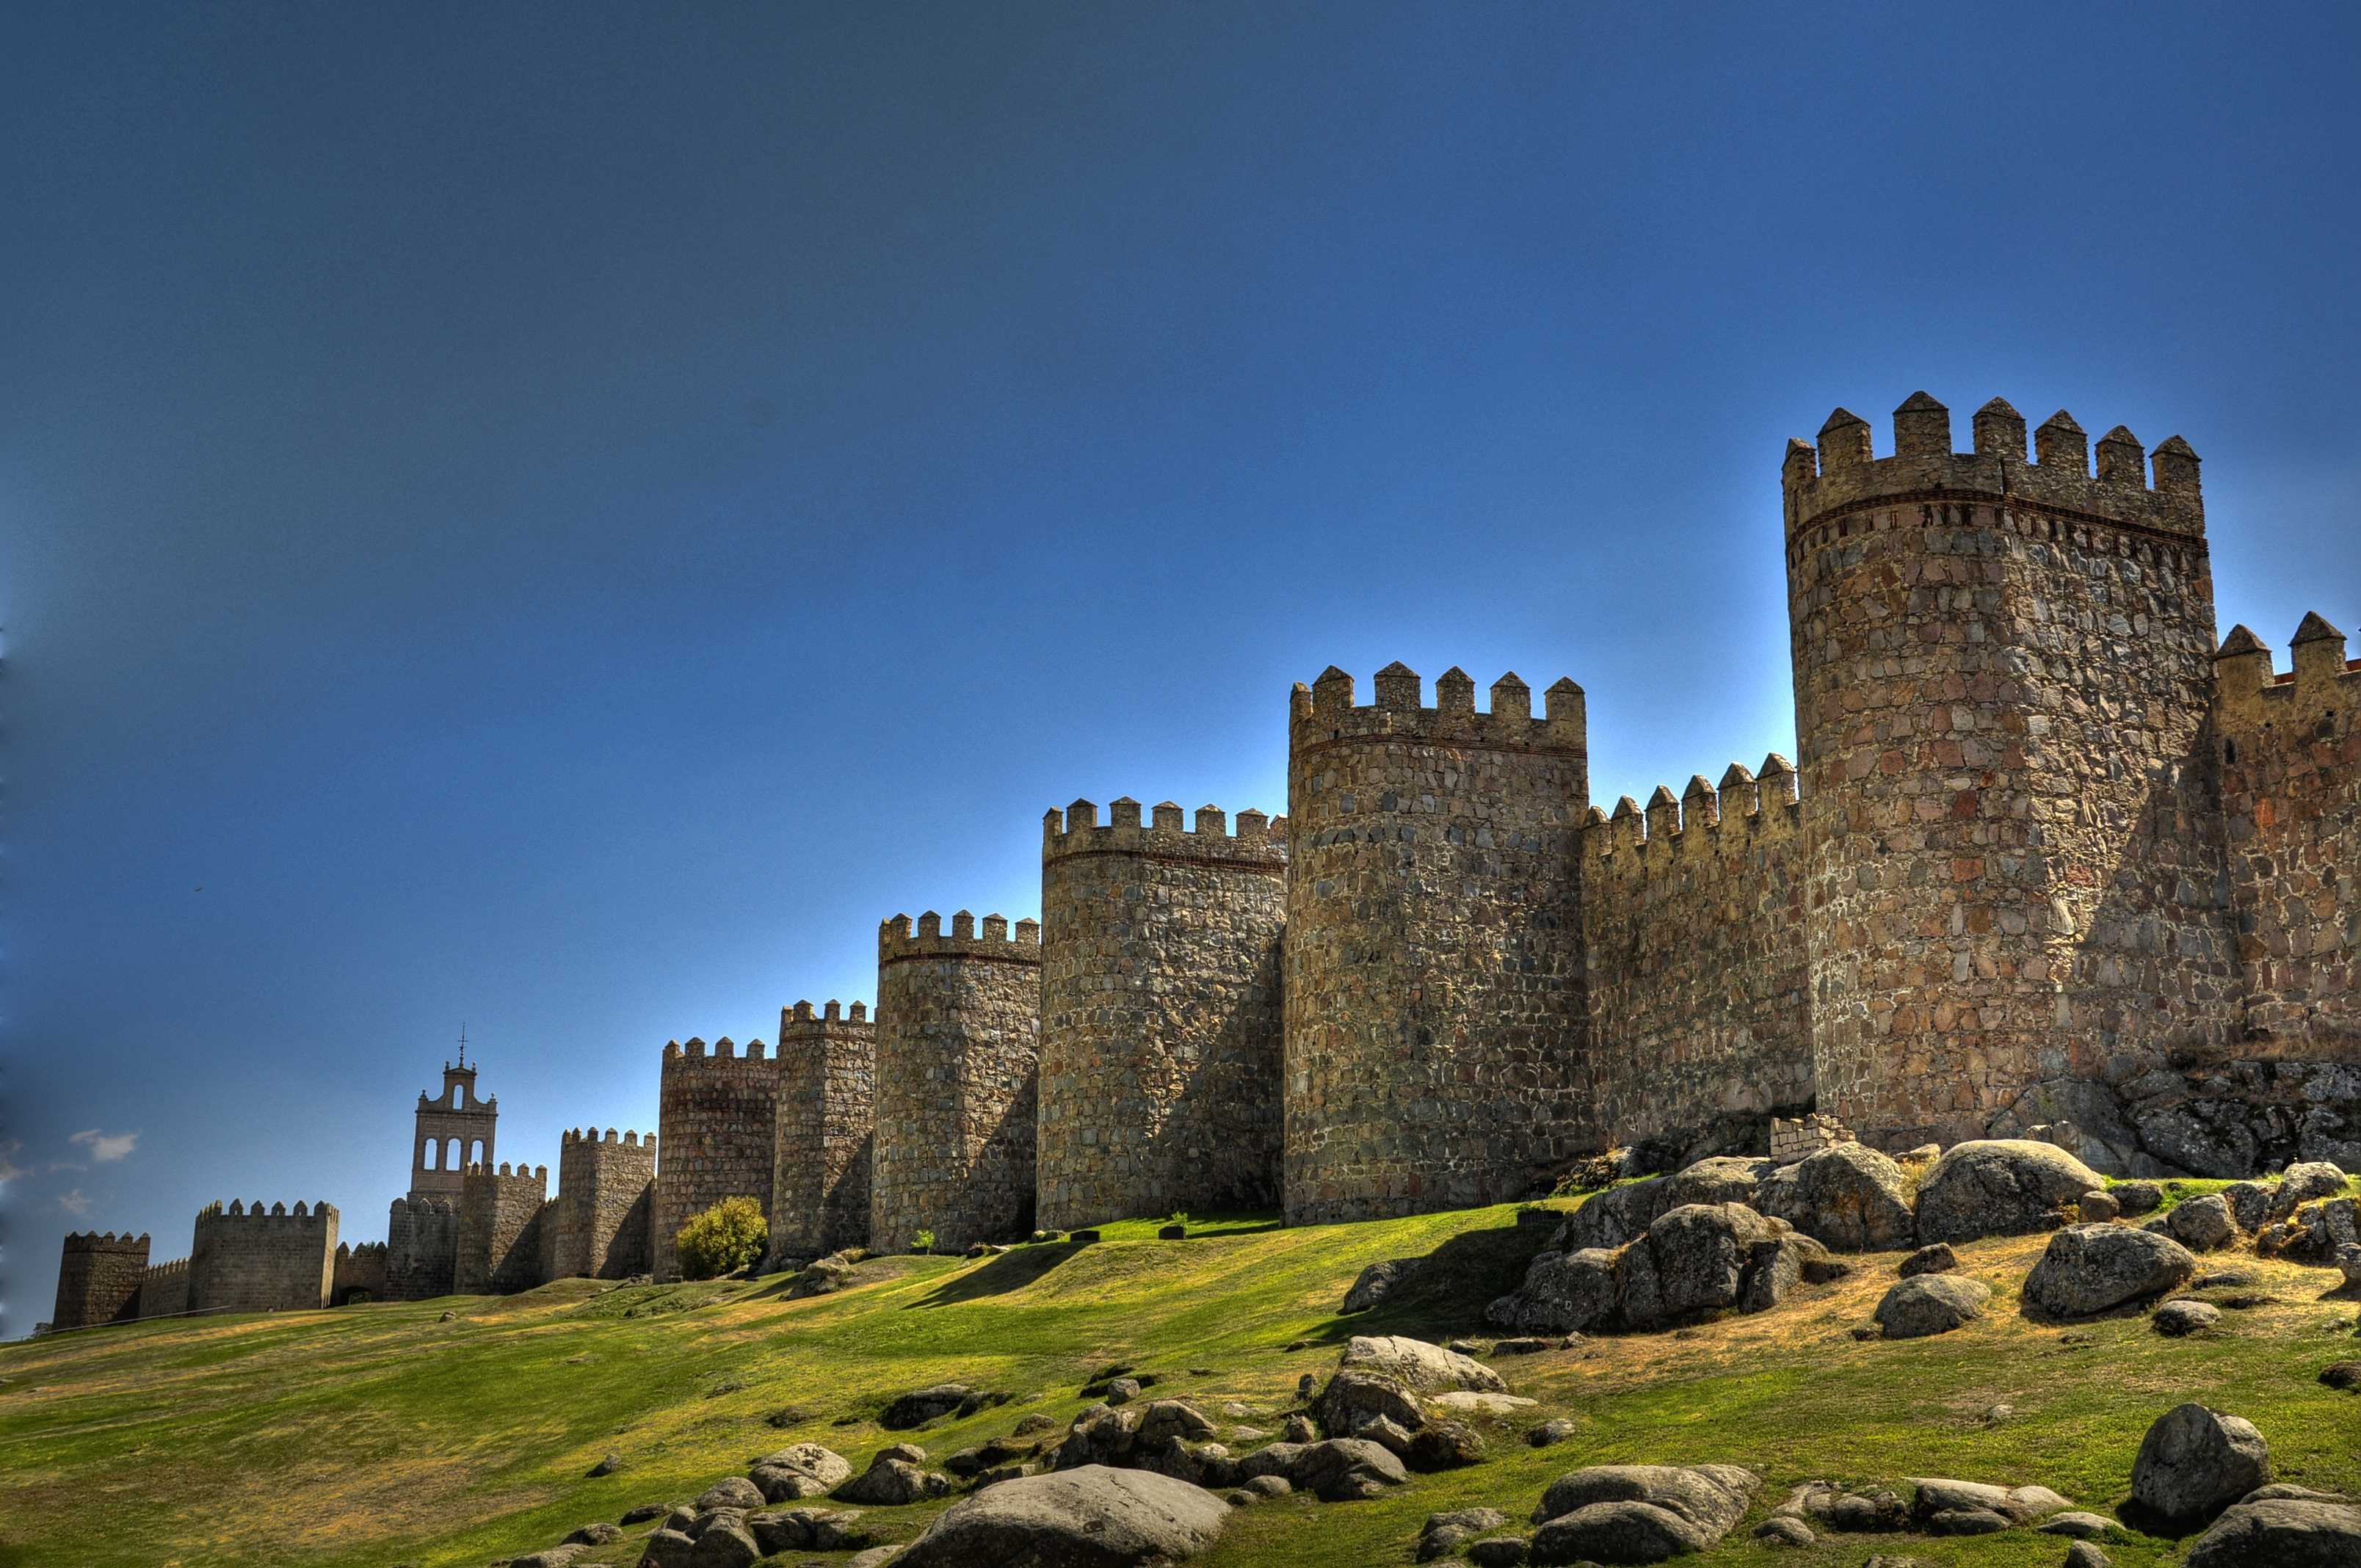 Spain.Avila.EuroSpain Travel